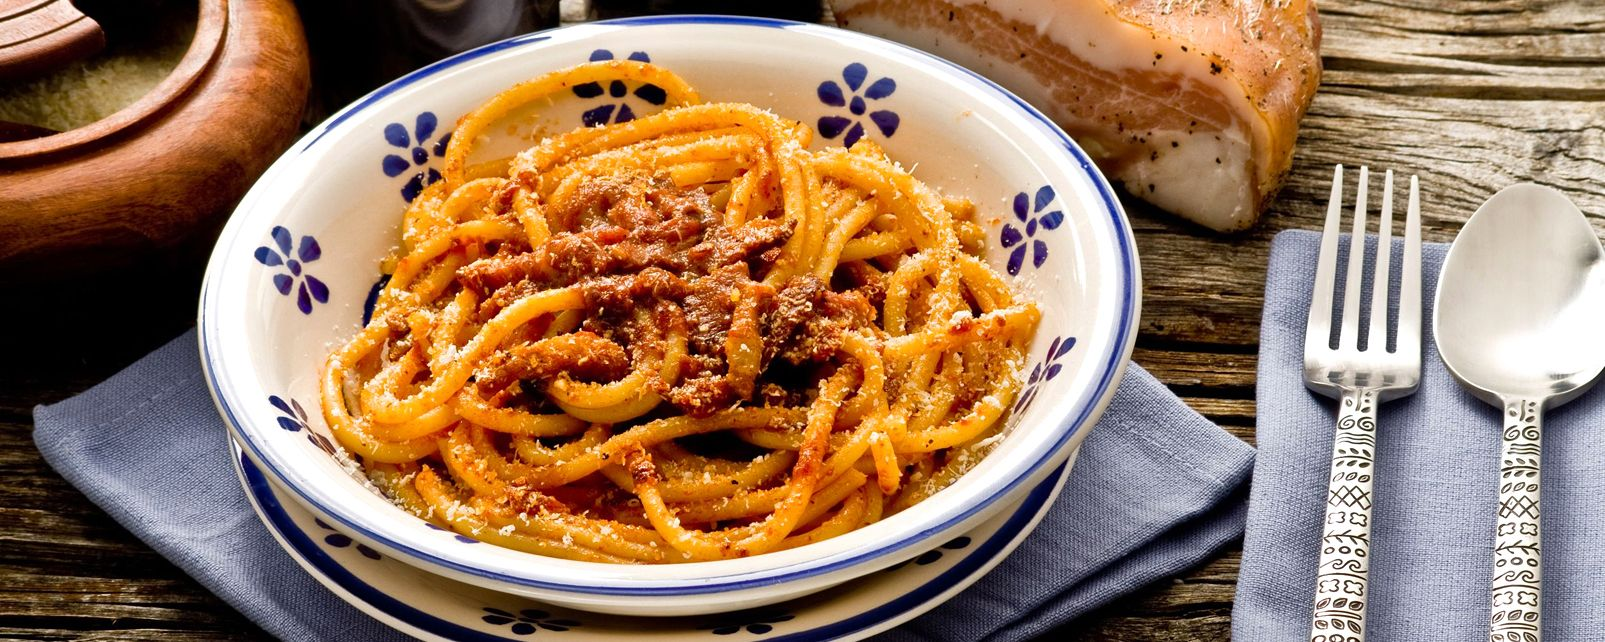 Bucatini all'amatriciana , Piatto di bucatini all'amatriciana , Italia